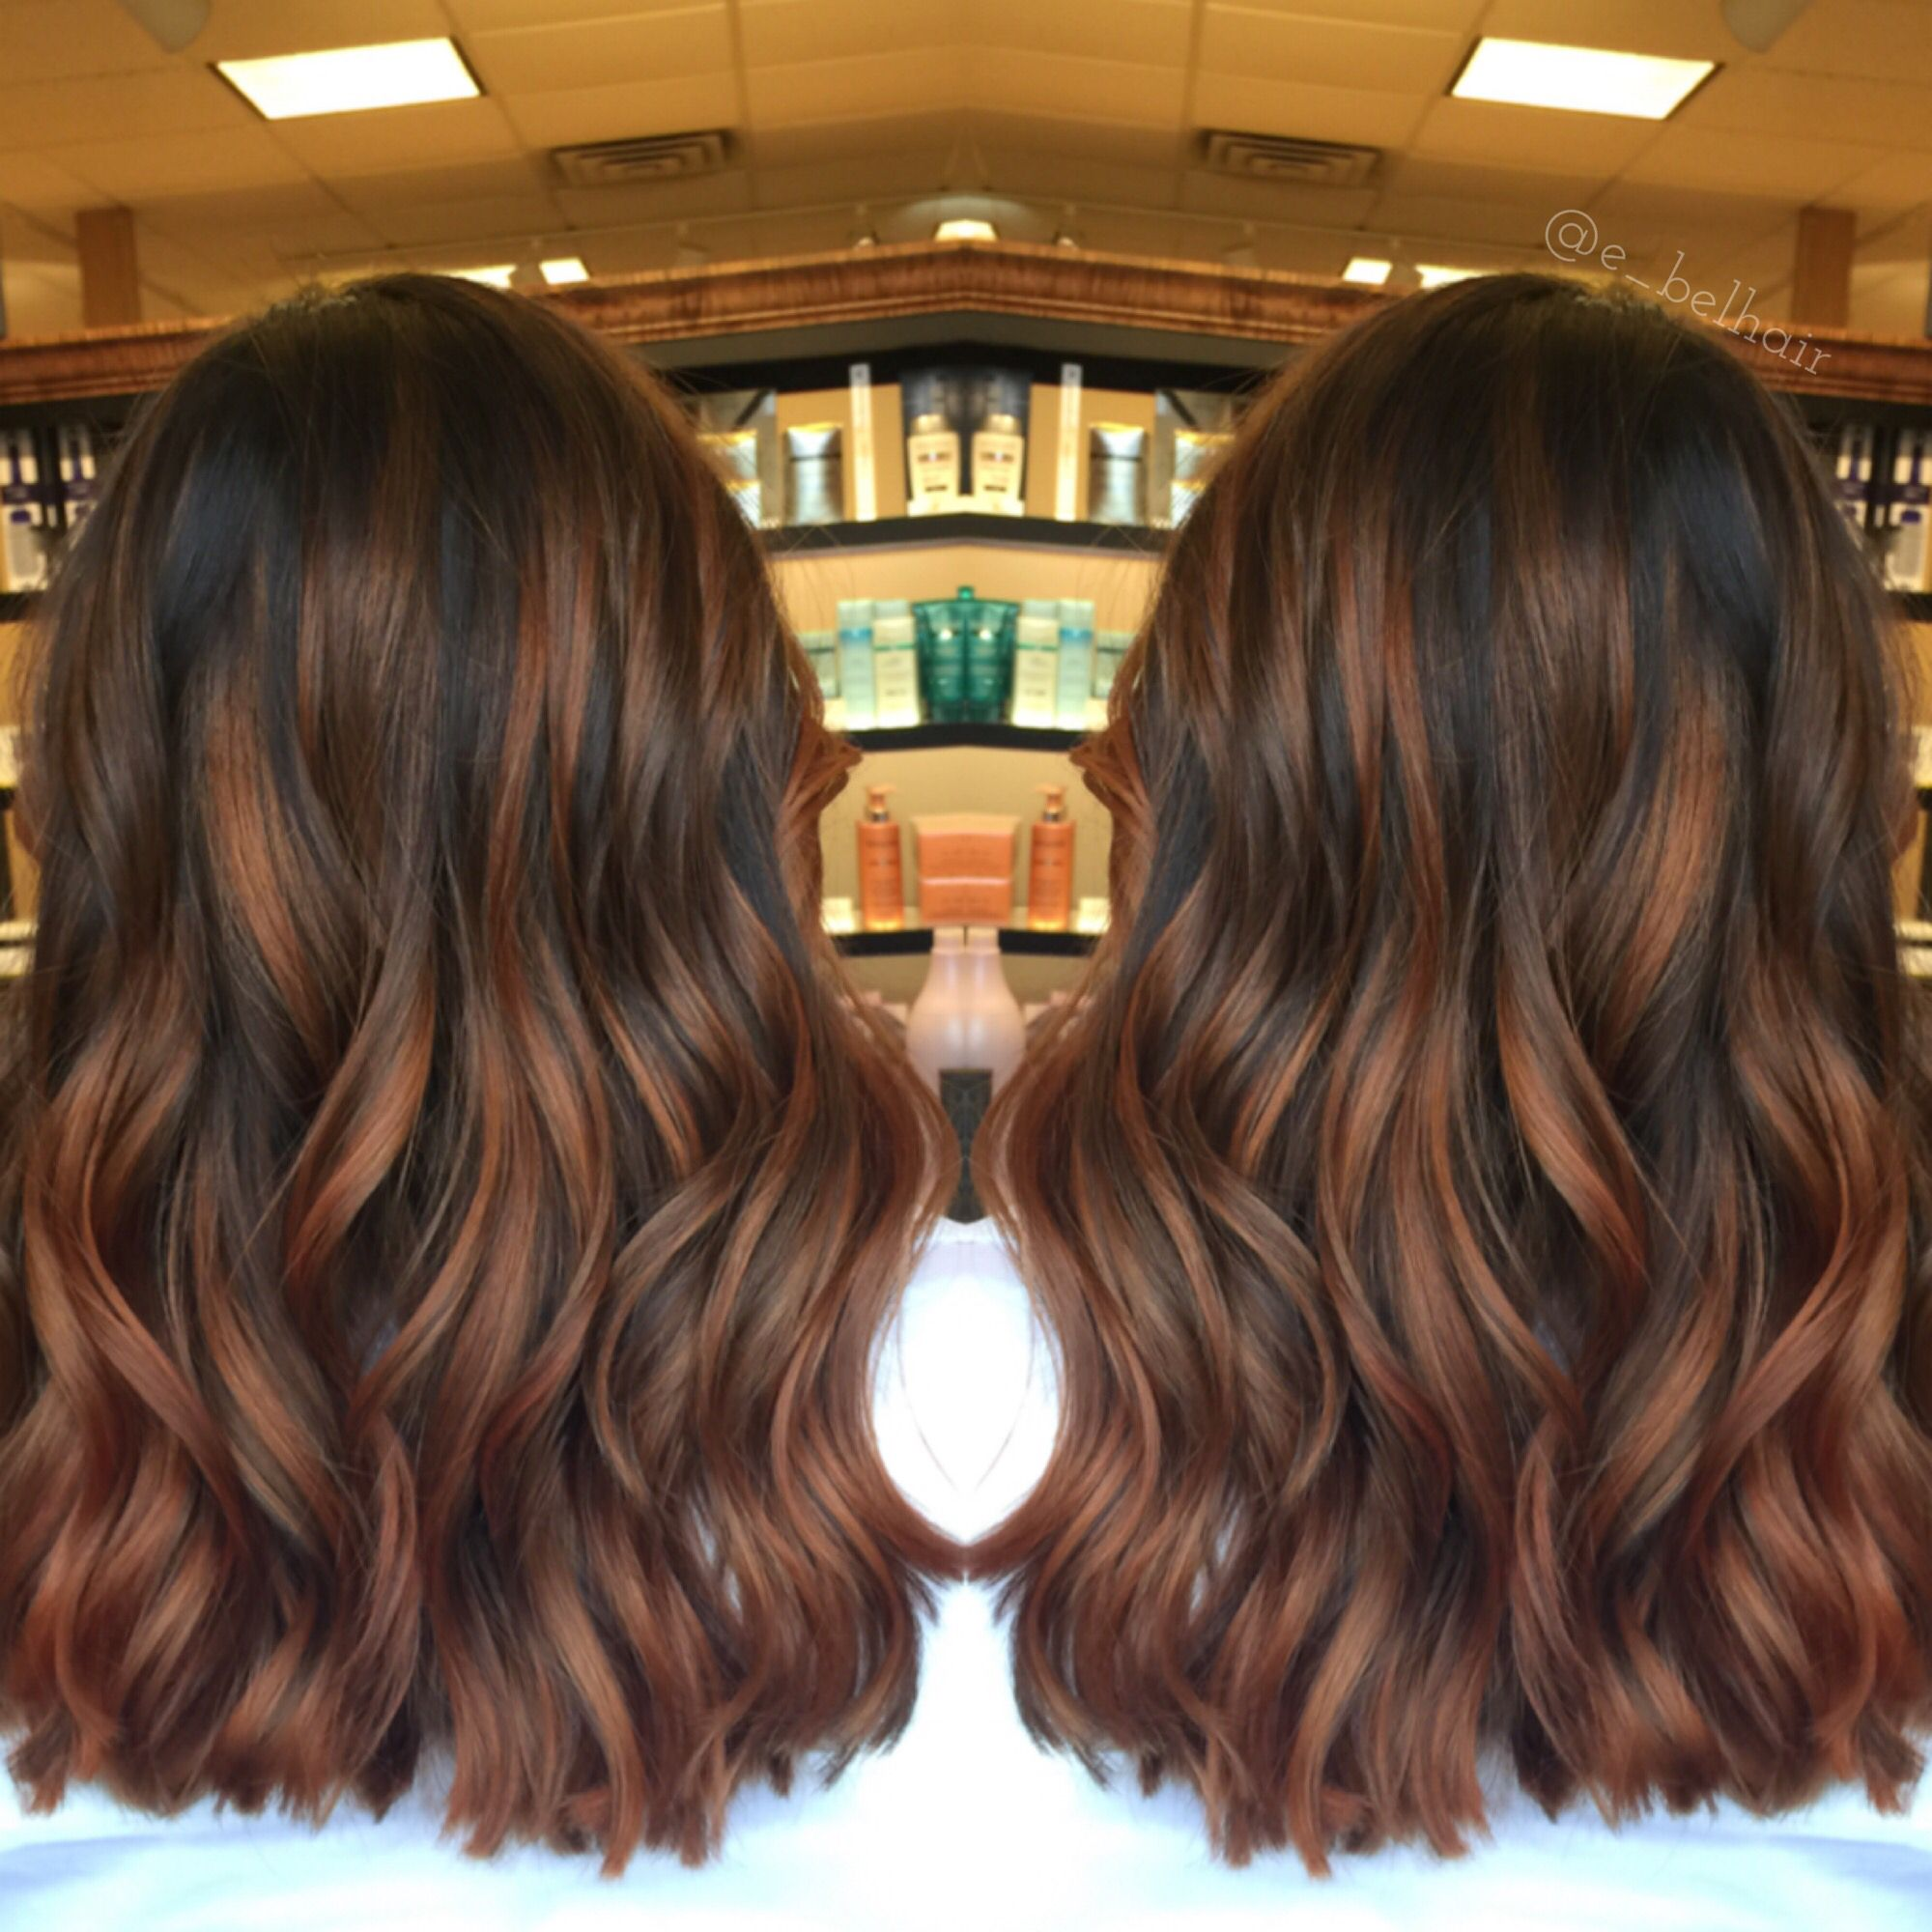 Cinnamon Spice Balayage Hair Styles Cinnamon Hair Brunette Hair Color